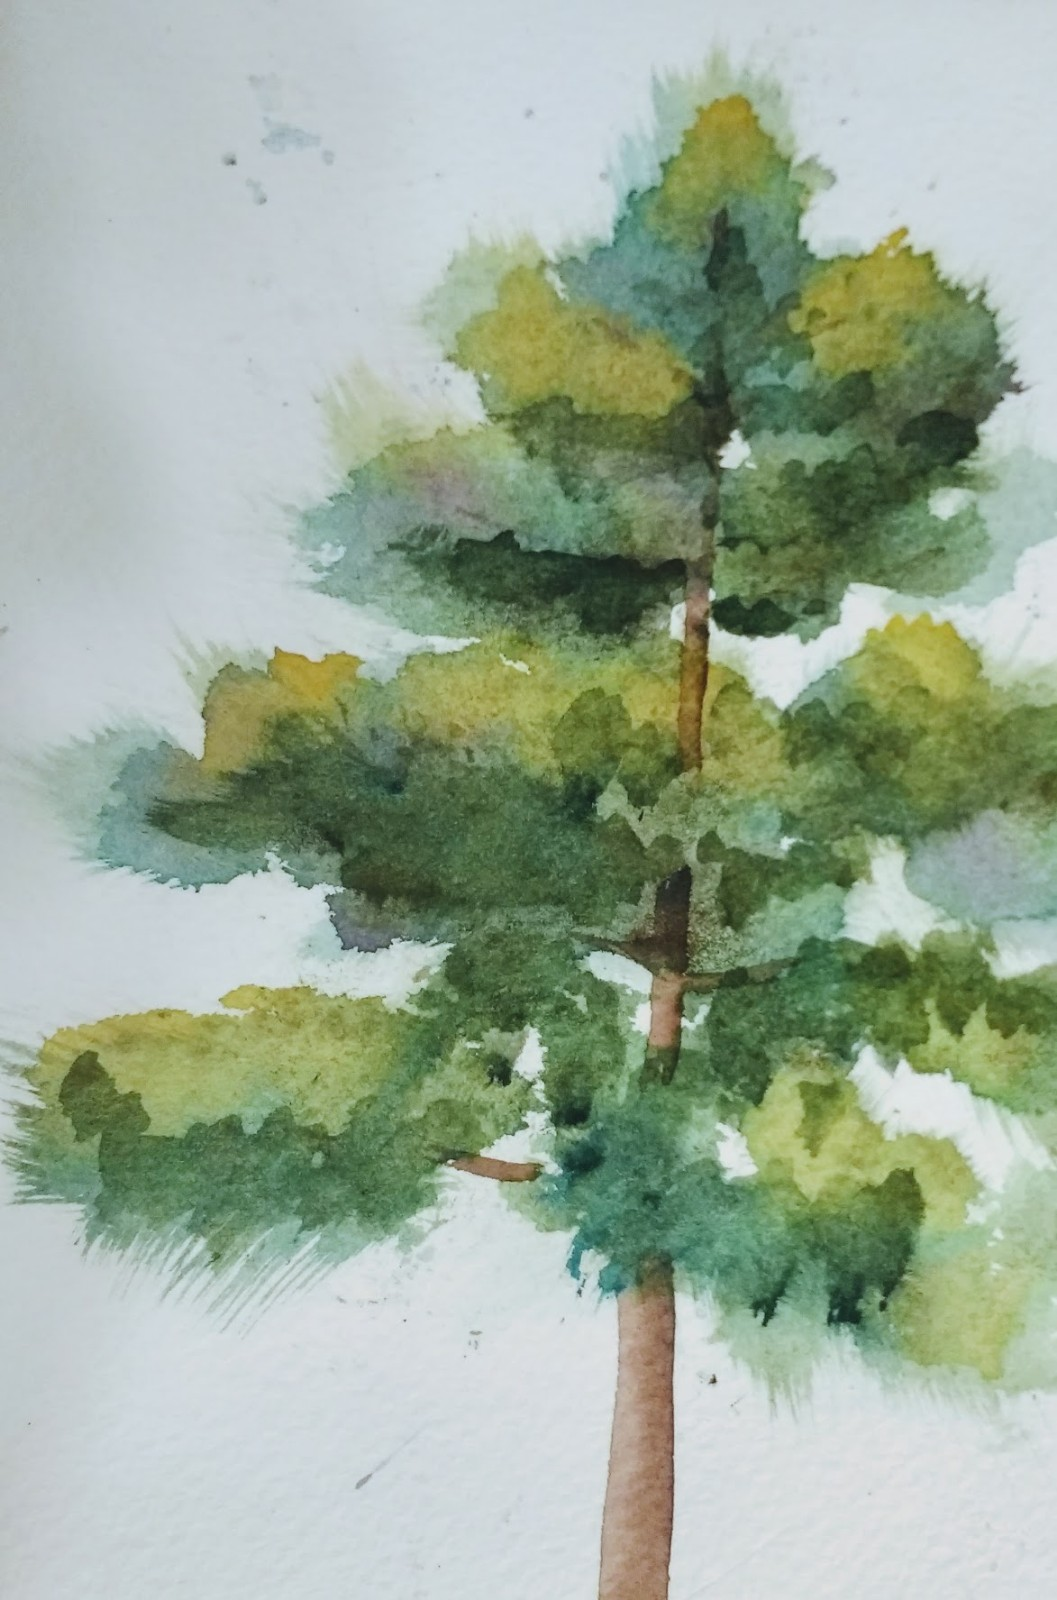 Chris Campbell Watercolors: TREES, TREES, TREES